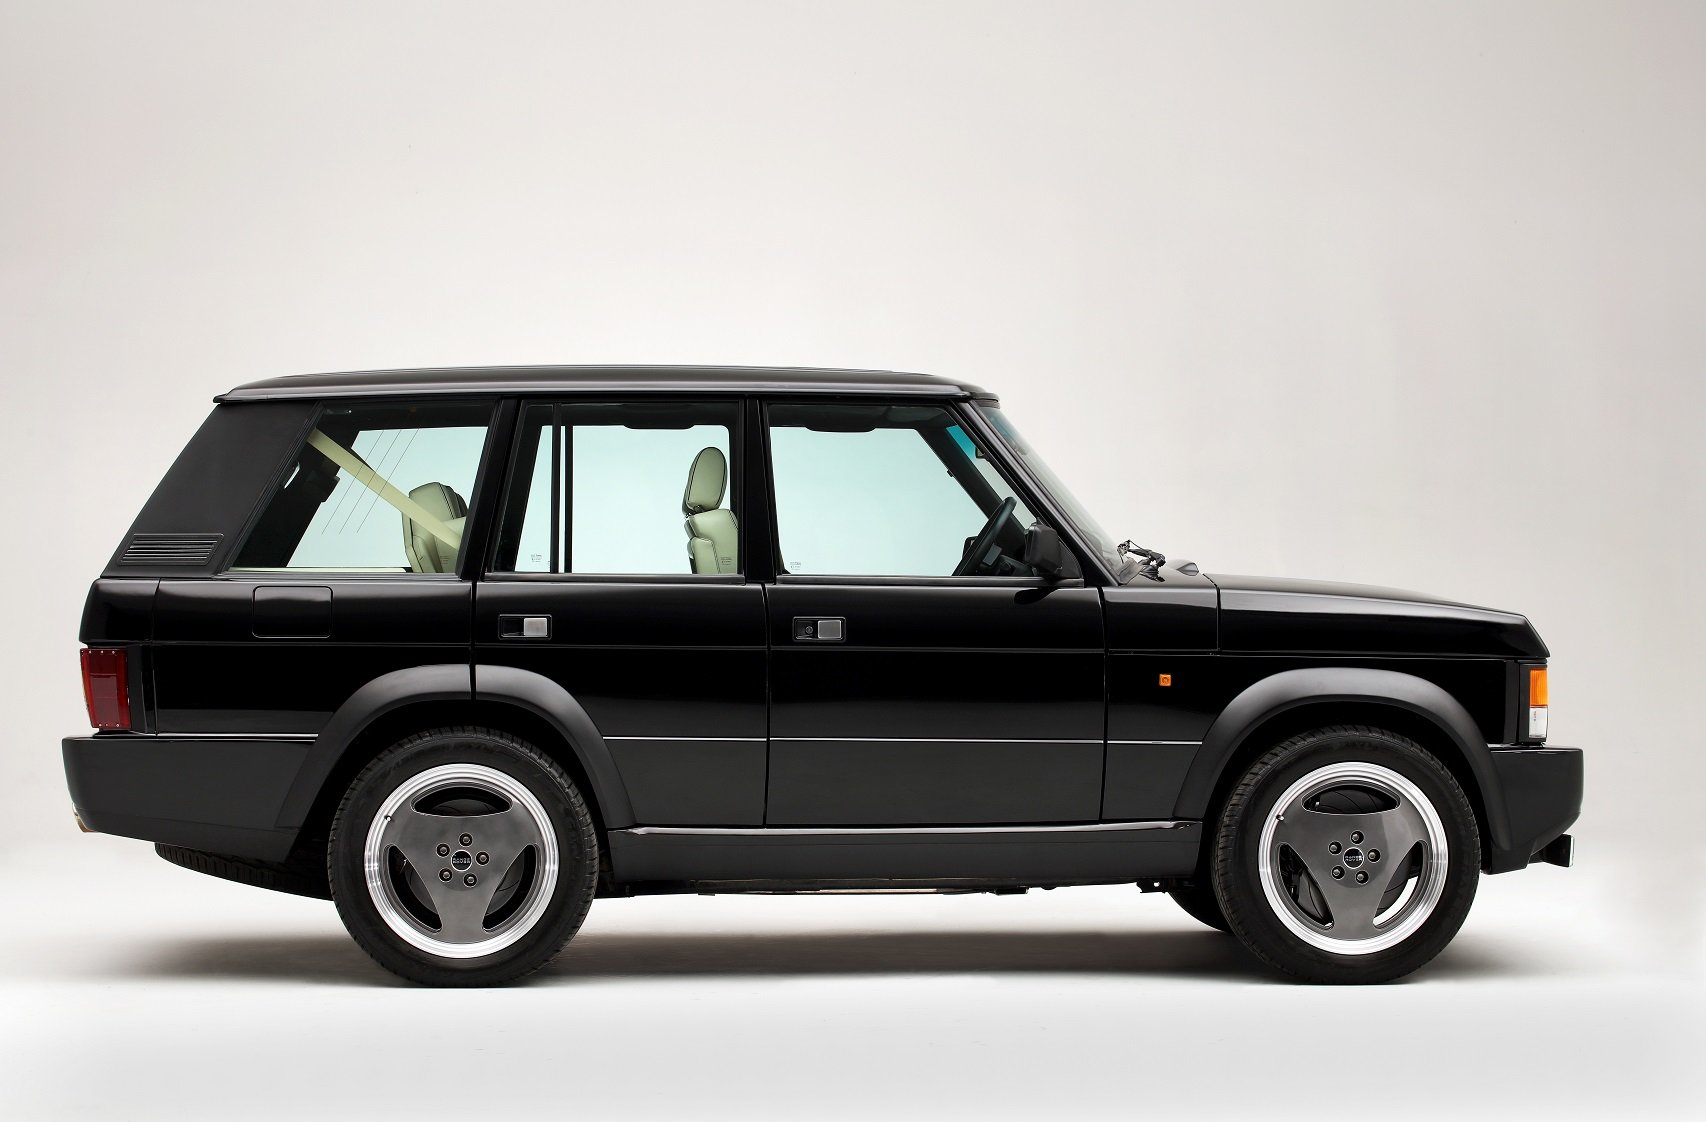 2004 Range Rover Chieftain, re-engineered Supercar For Sale (picture 2 of 6)